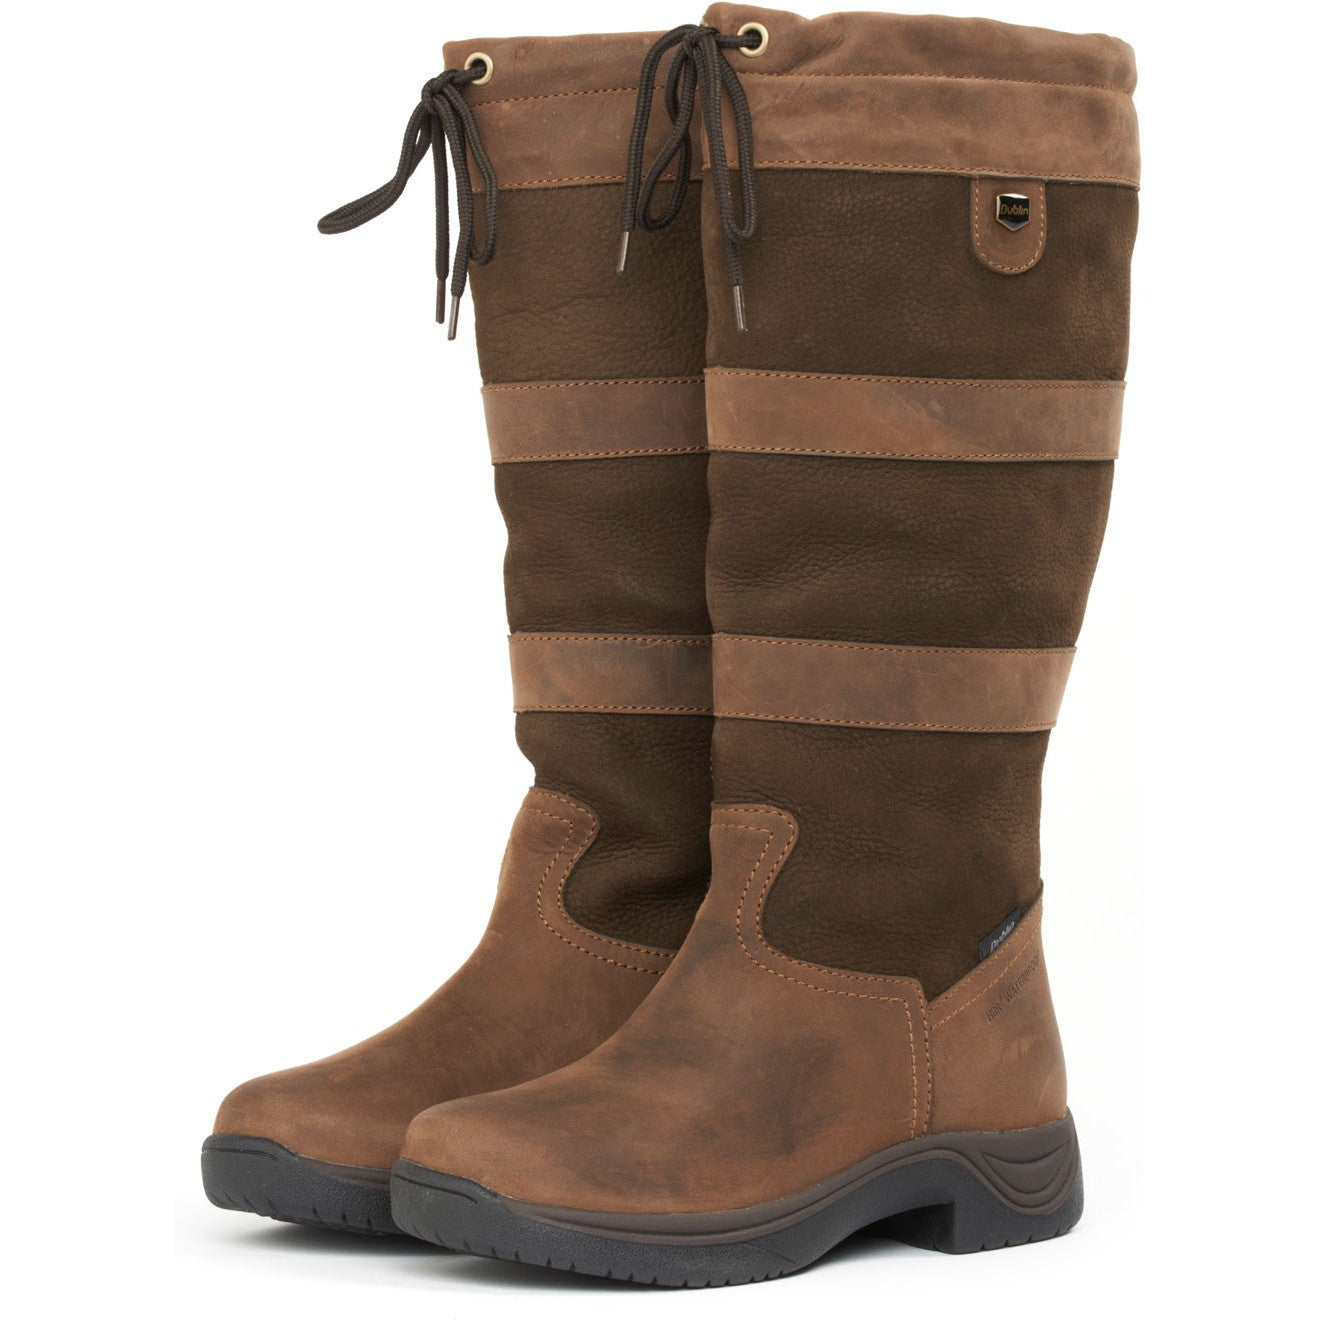 Su River Country Saldo Dublin Rideaway Wide In Boots rBWCoedx